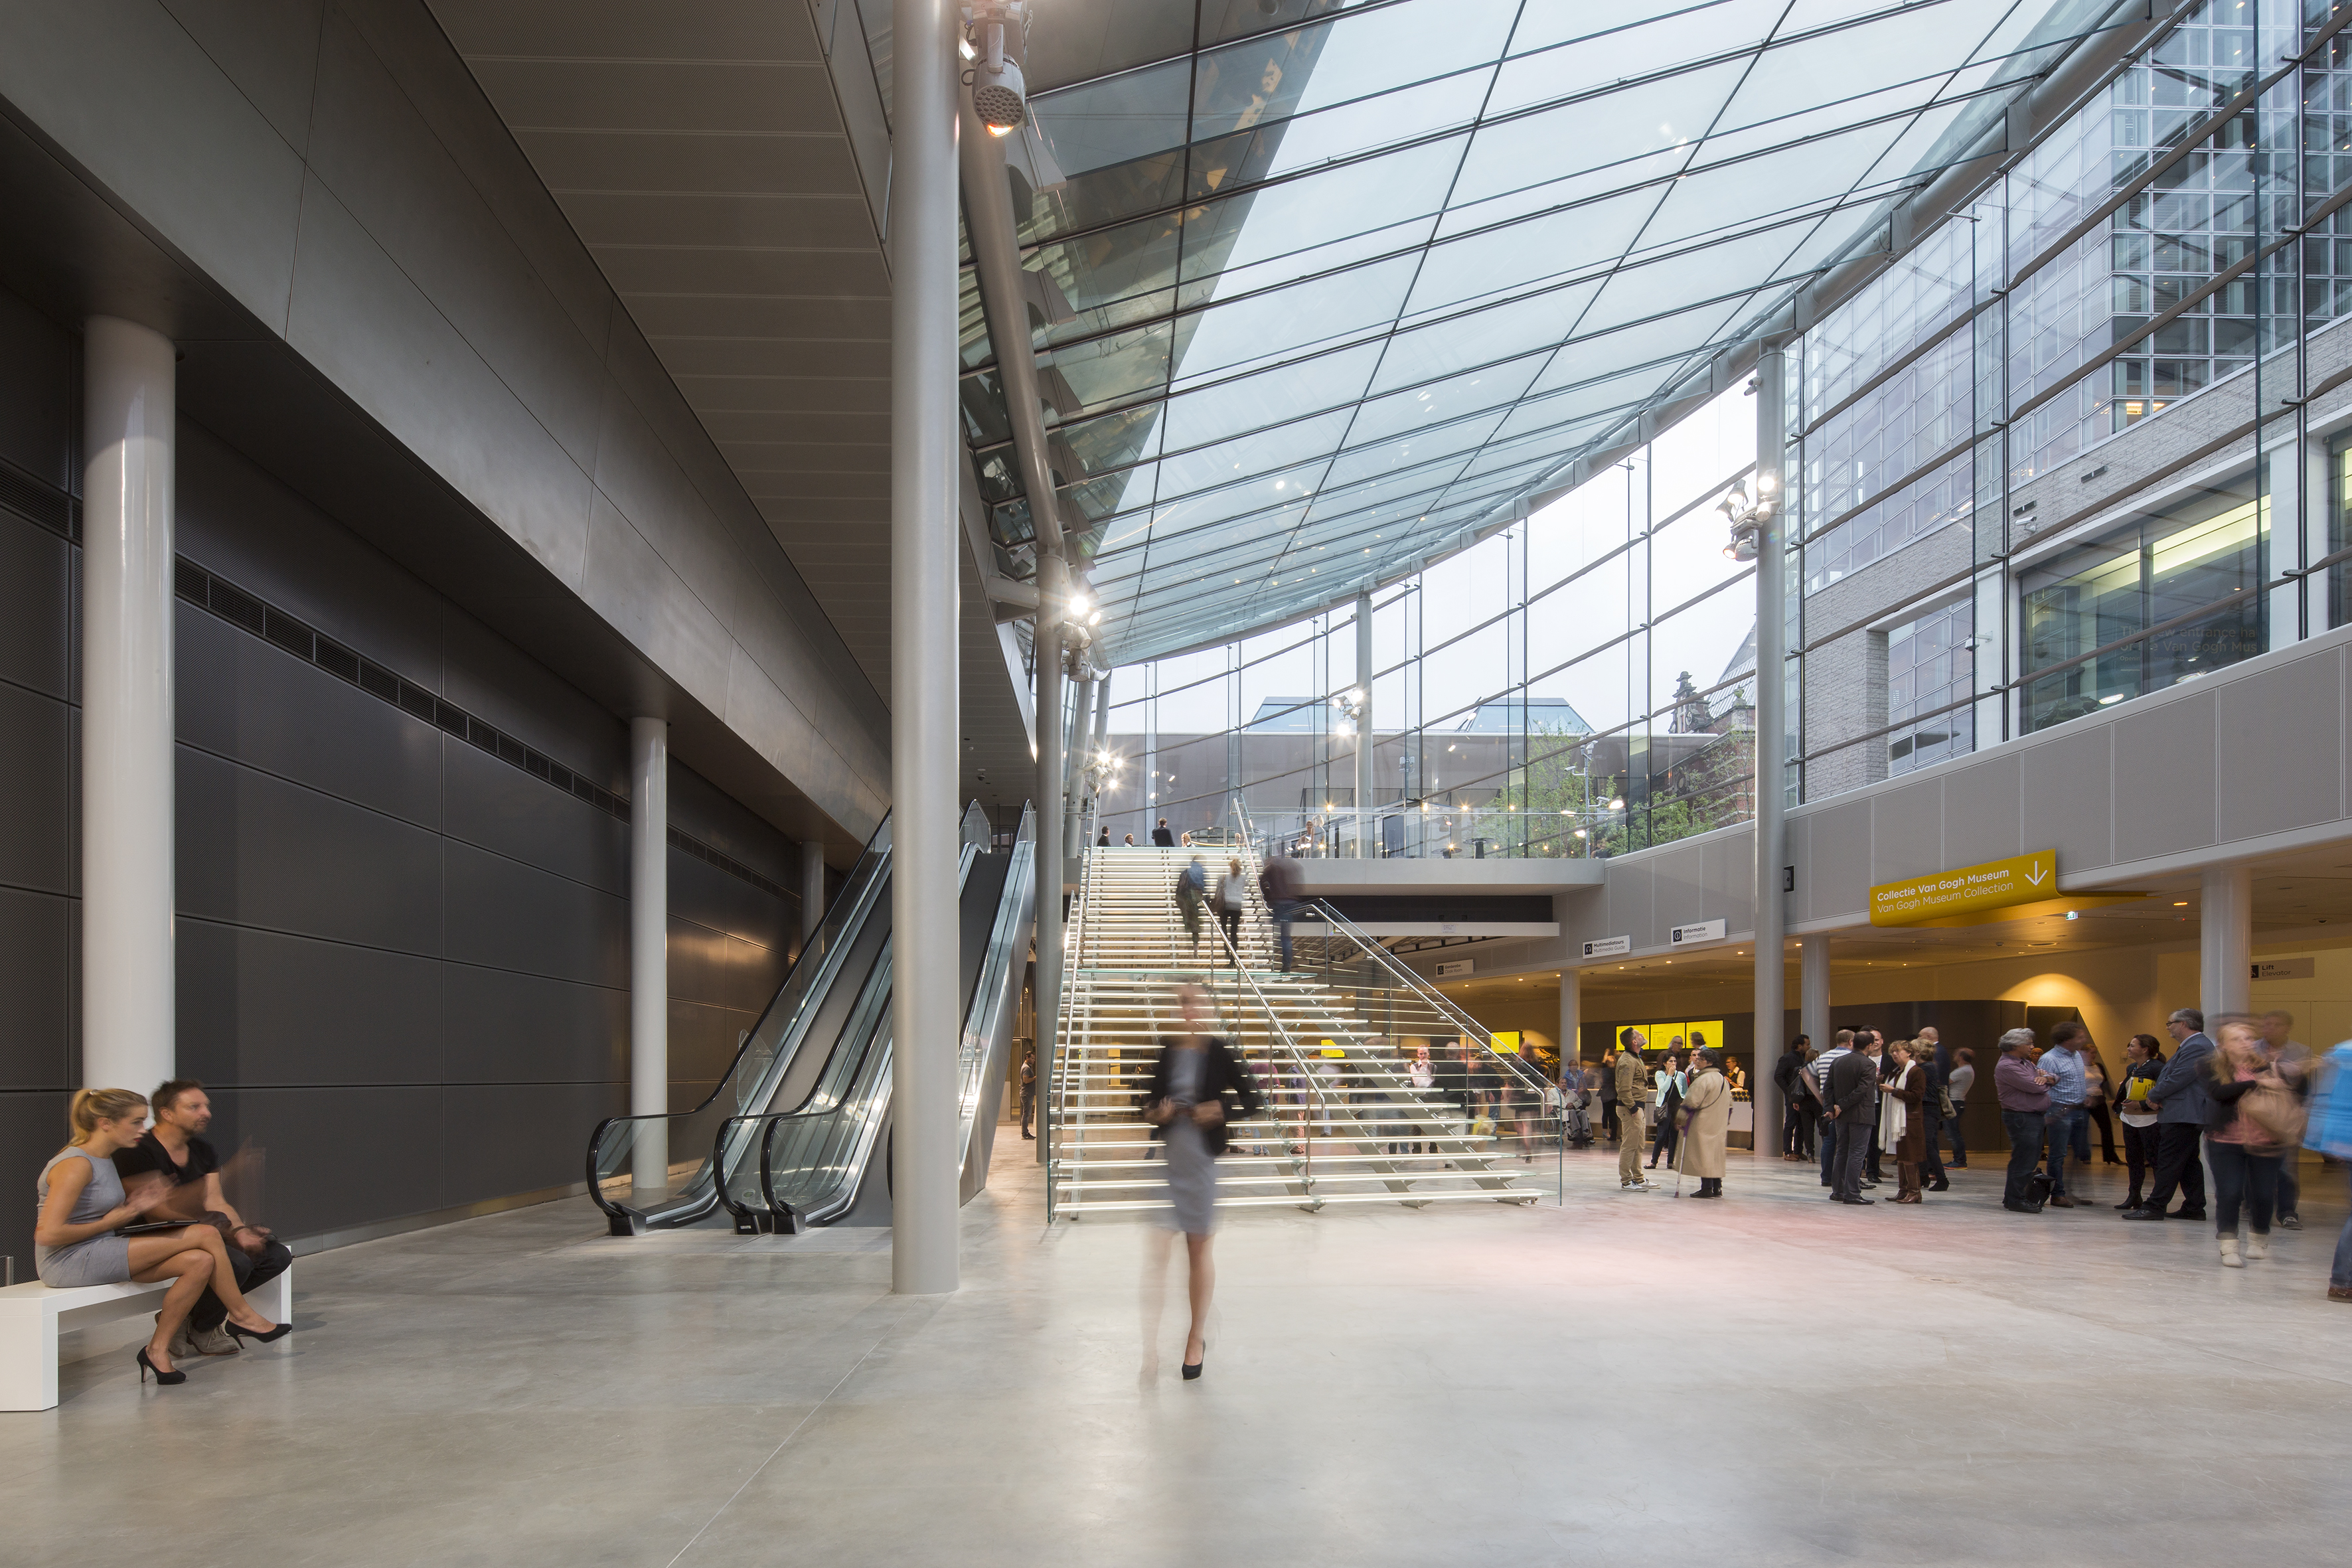 Amsterdam's expanded Van Gogh Museum includes a spacious atrium that links below-grade spaces to the existing museum.